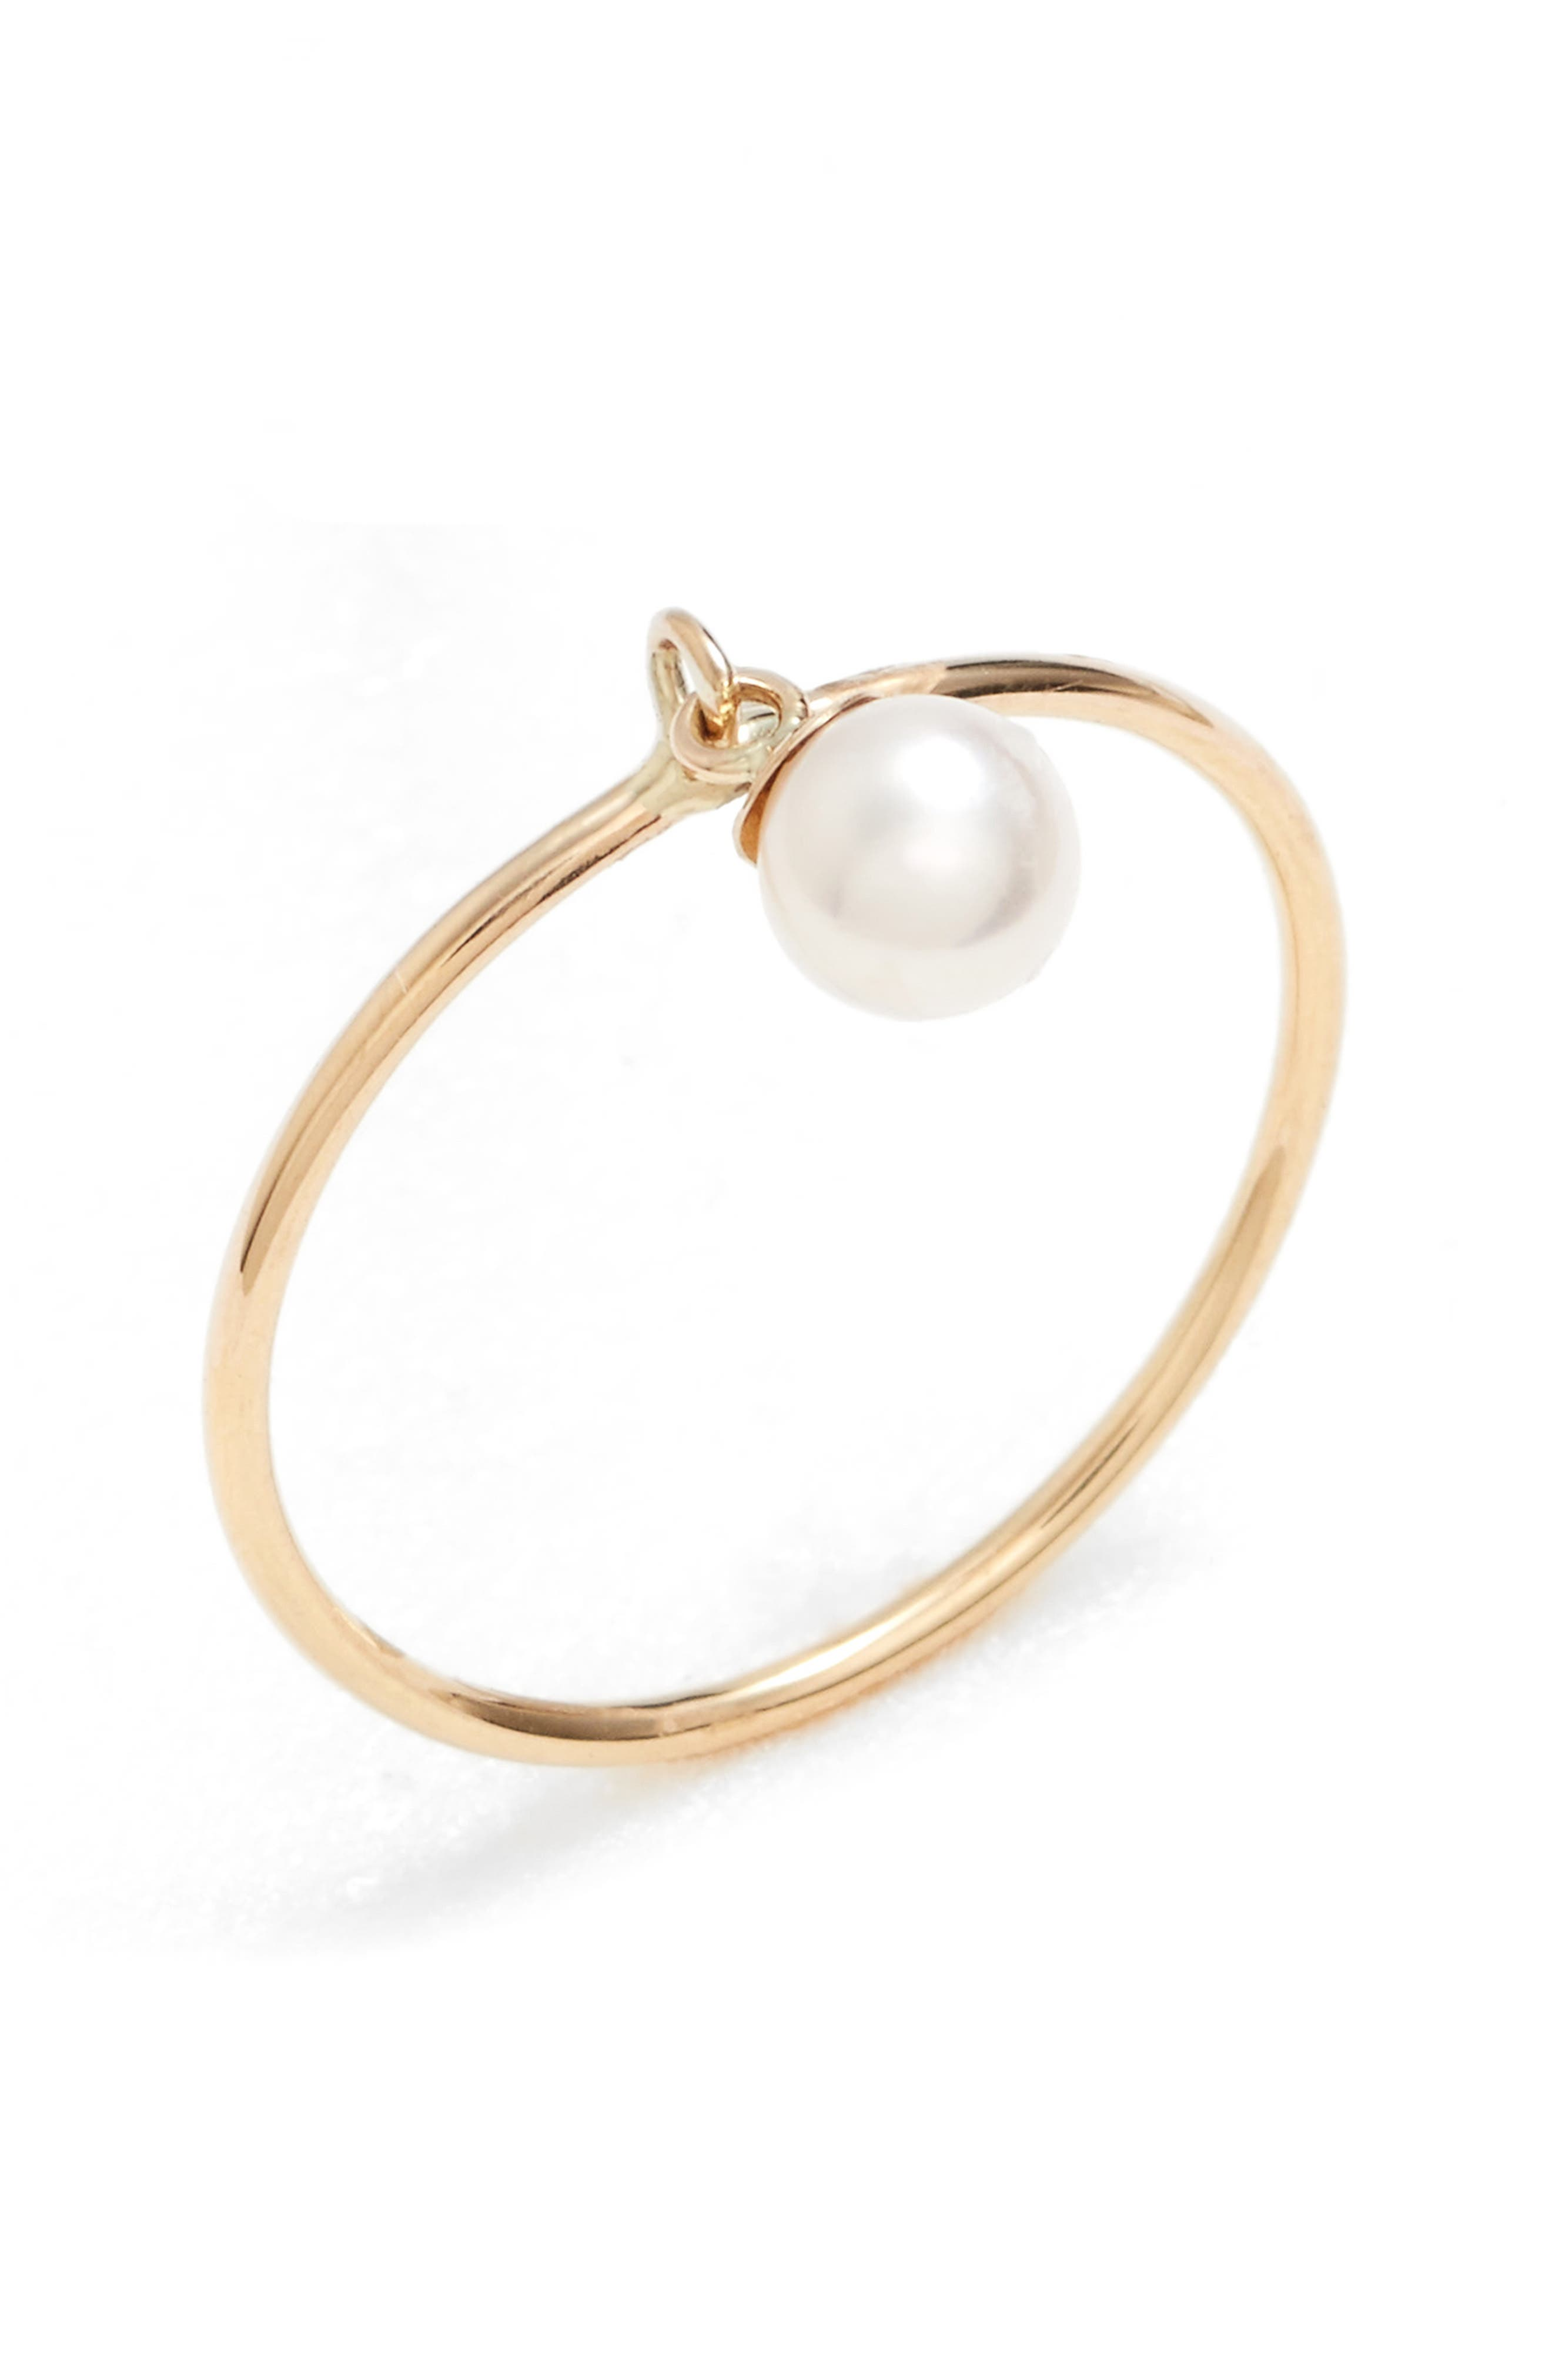 Dangling Pearl Charm Ring,                         Main,                         color, Yellow Gold/ White Pearl